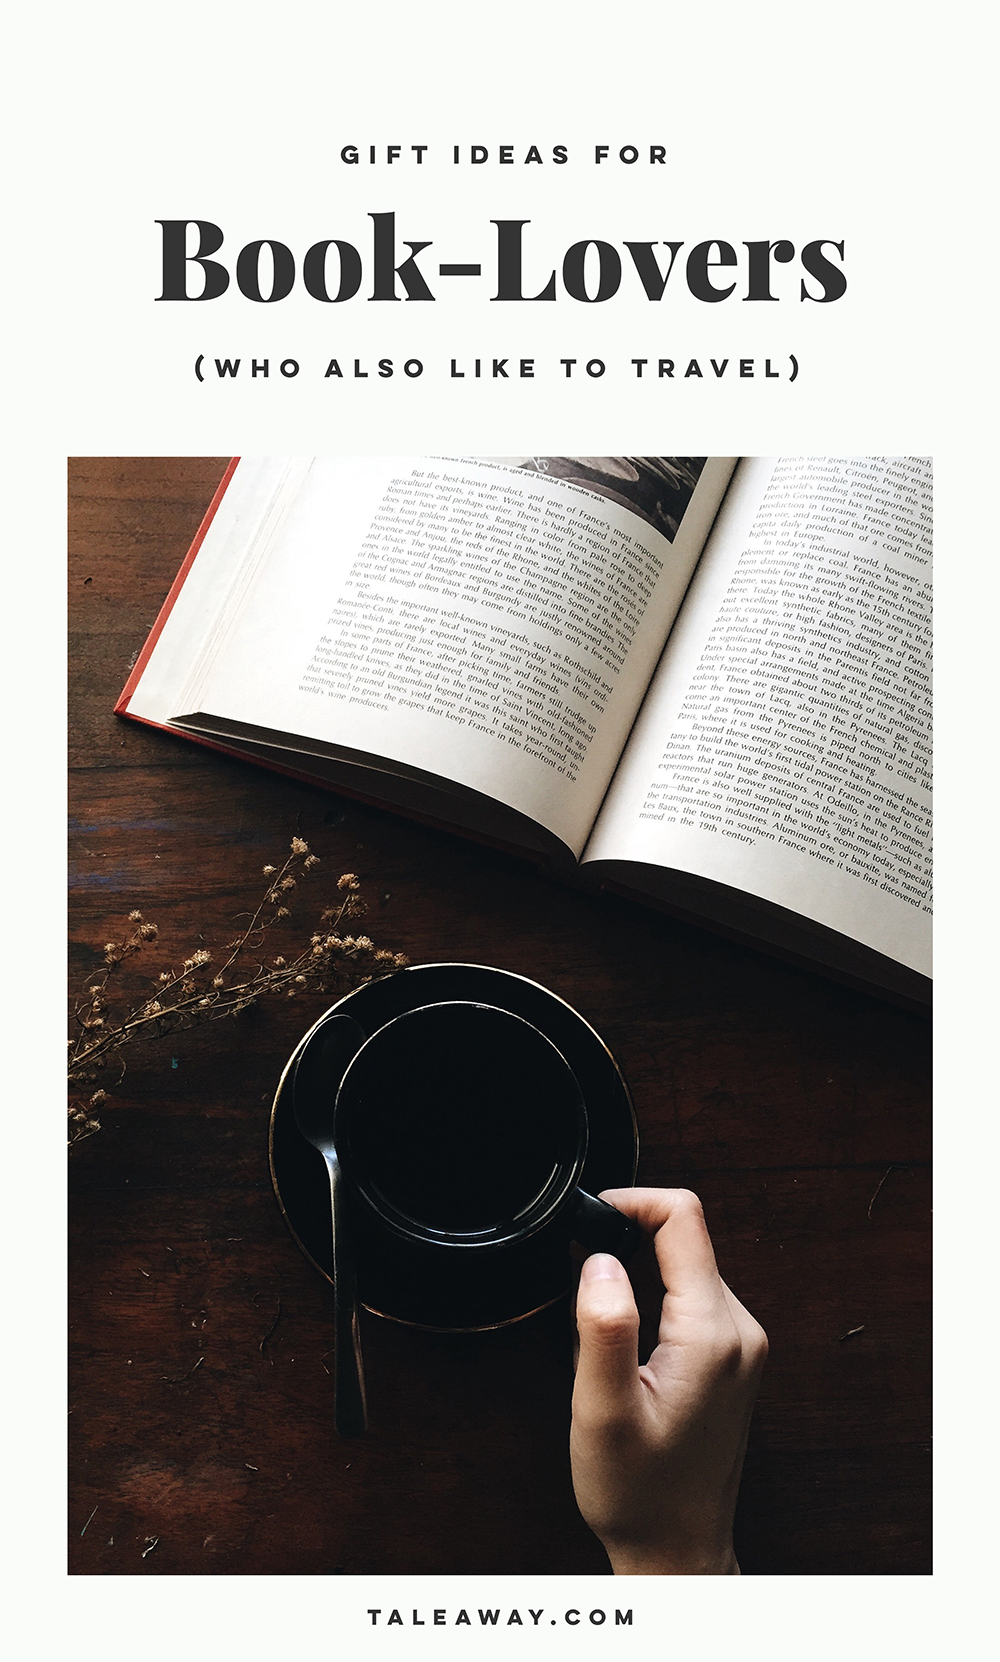 Gifts For Book Lovers - For more books that inspire travel visit www.taleway.com. gifts for bookworms, gifts for readers, gifts for book lovers that aren't books, cool gifts for book lovers, gifts for book lovers amazon, book lovers gift basket, gifts for readers book lovers, gifts for travelers, gifts for travel lovers, books and travel, books and traveling, travel gifts